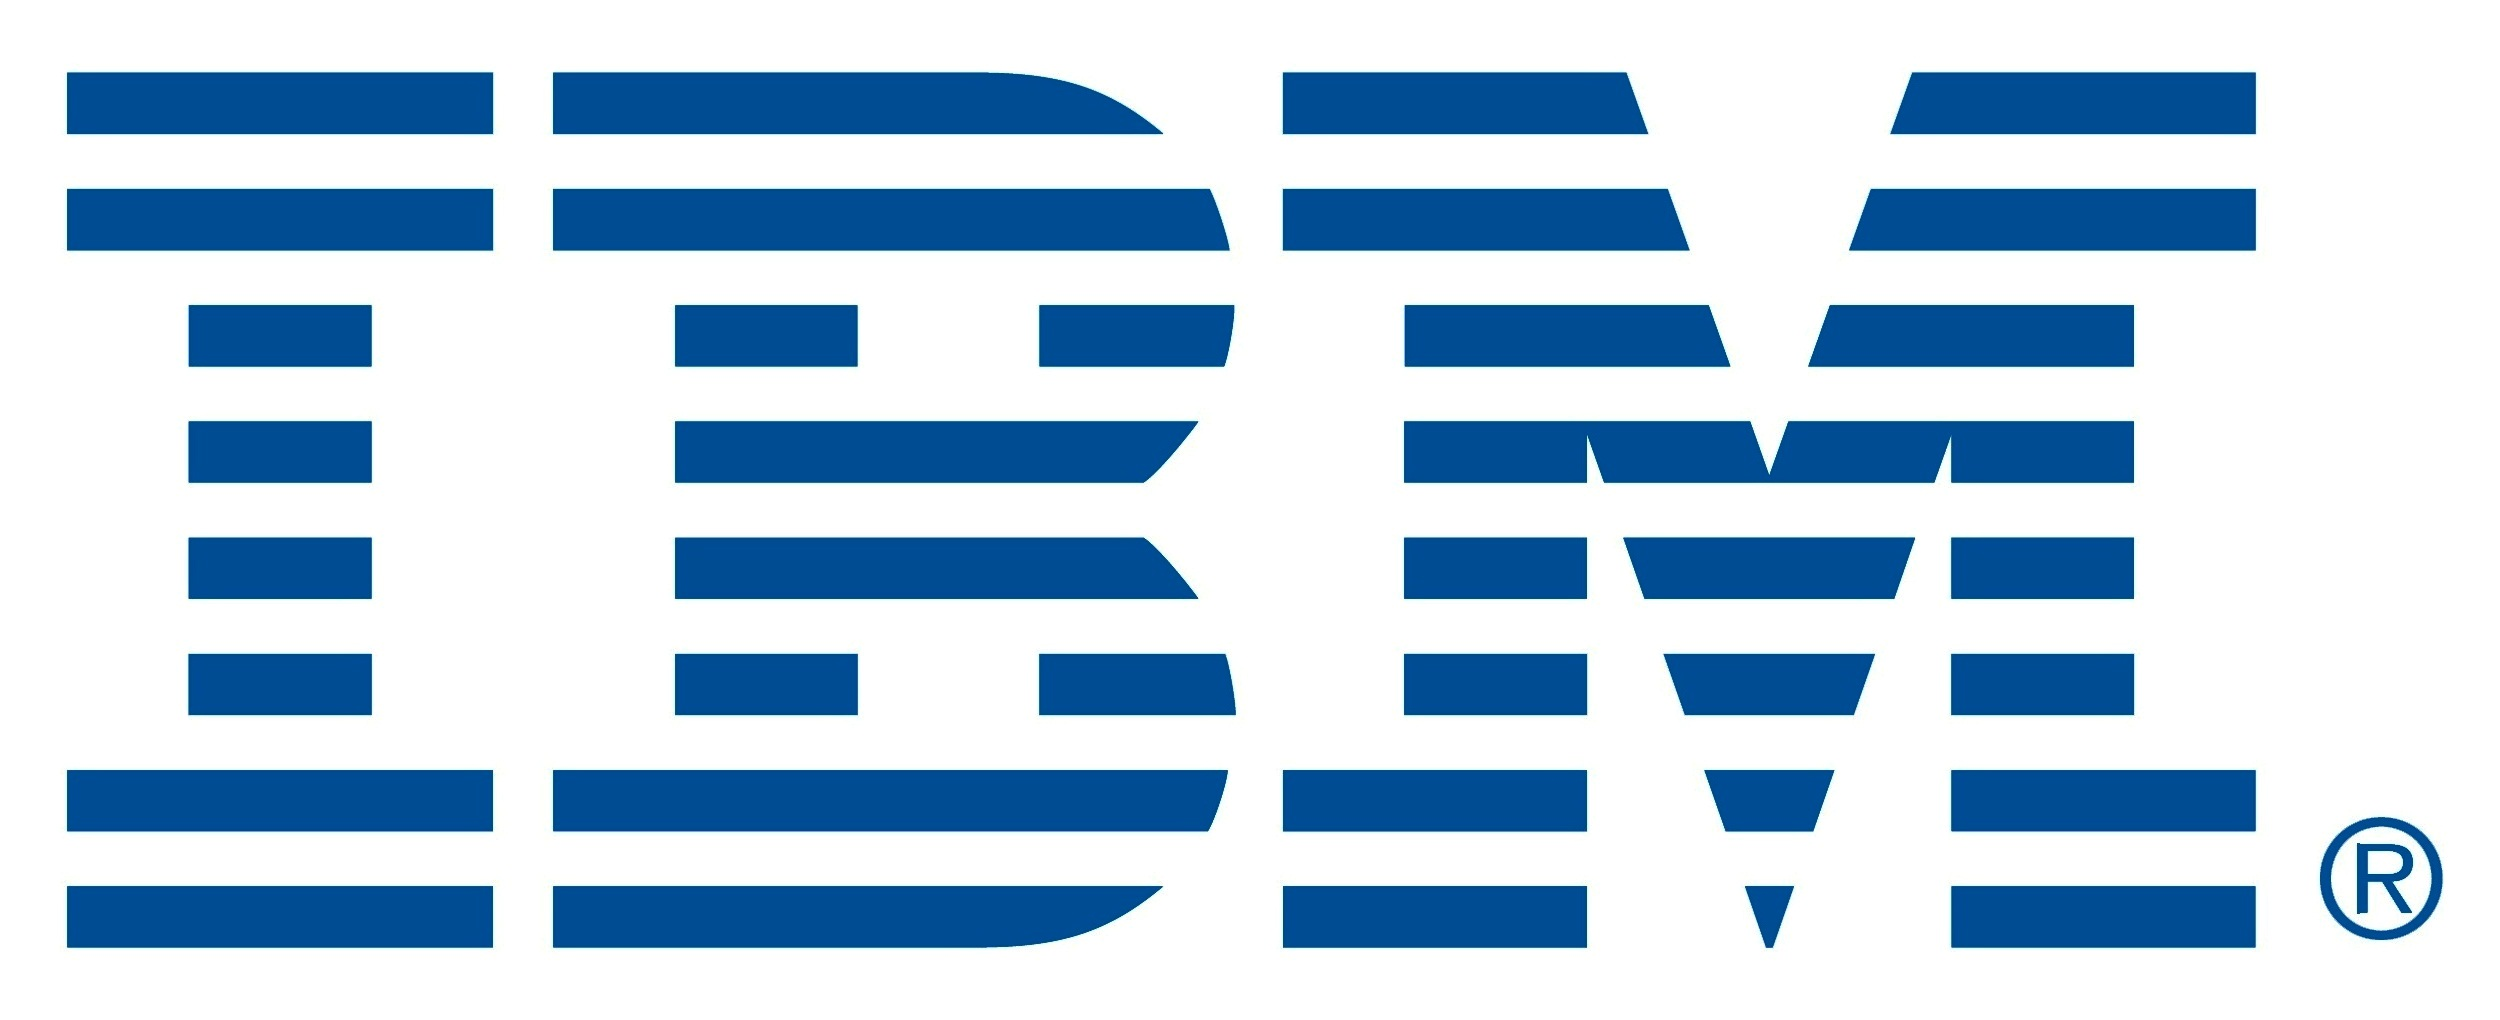 IBM logo - Tech History Today